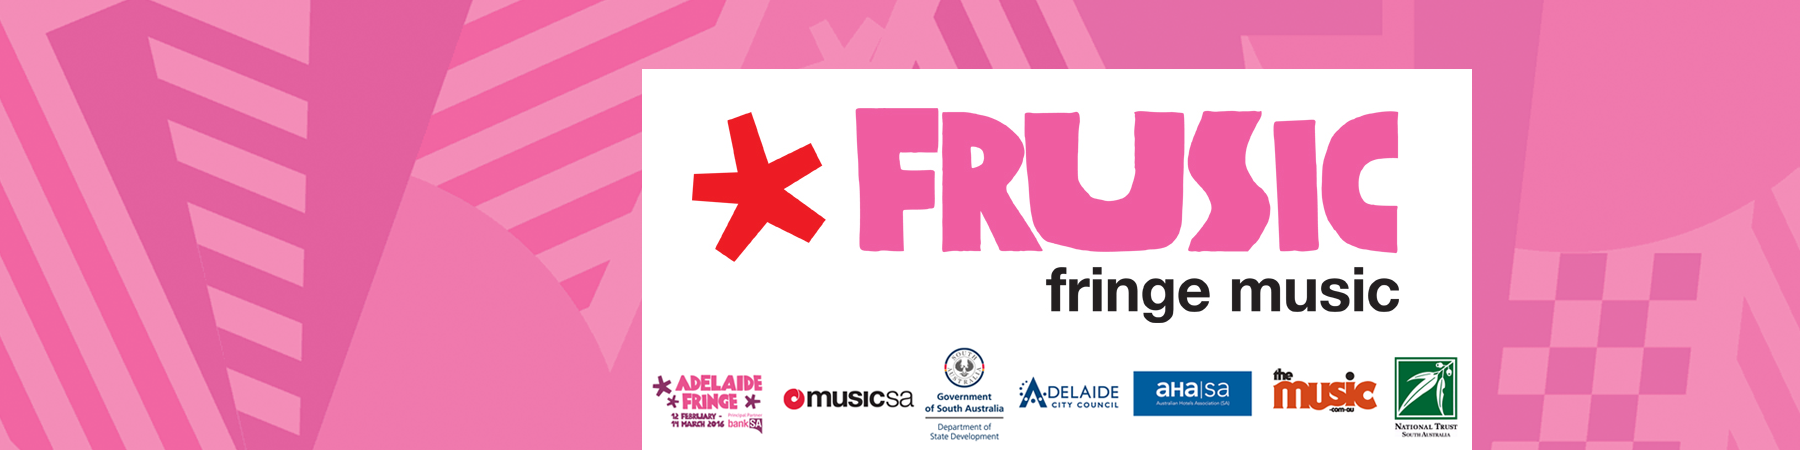 frusic begins as fringe program launches!